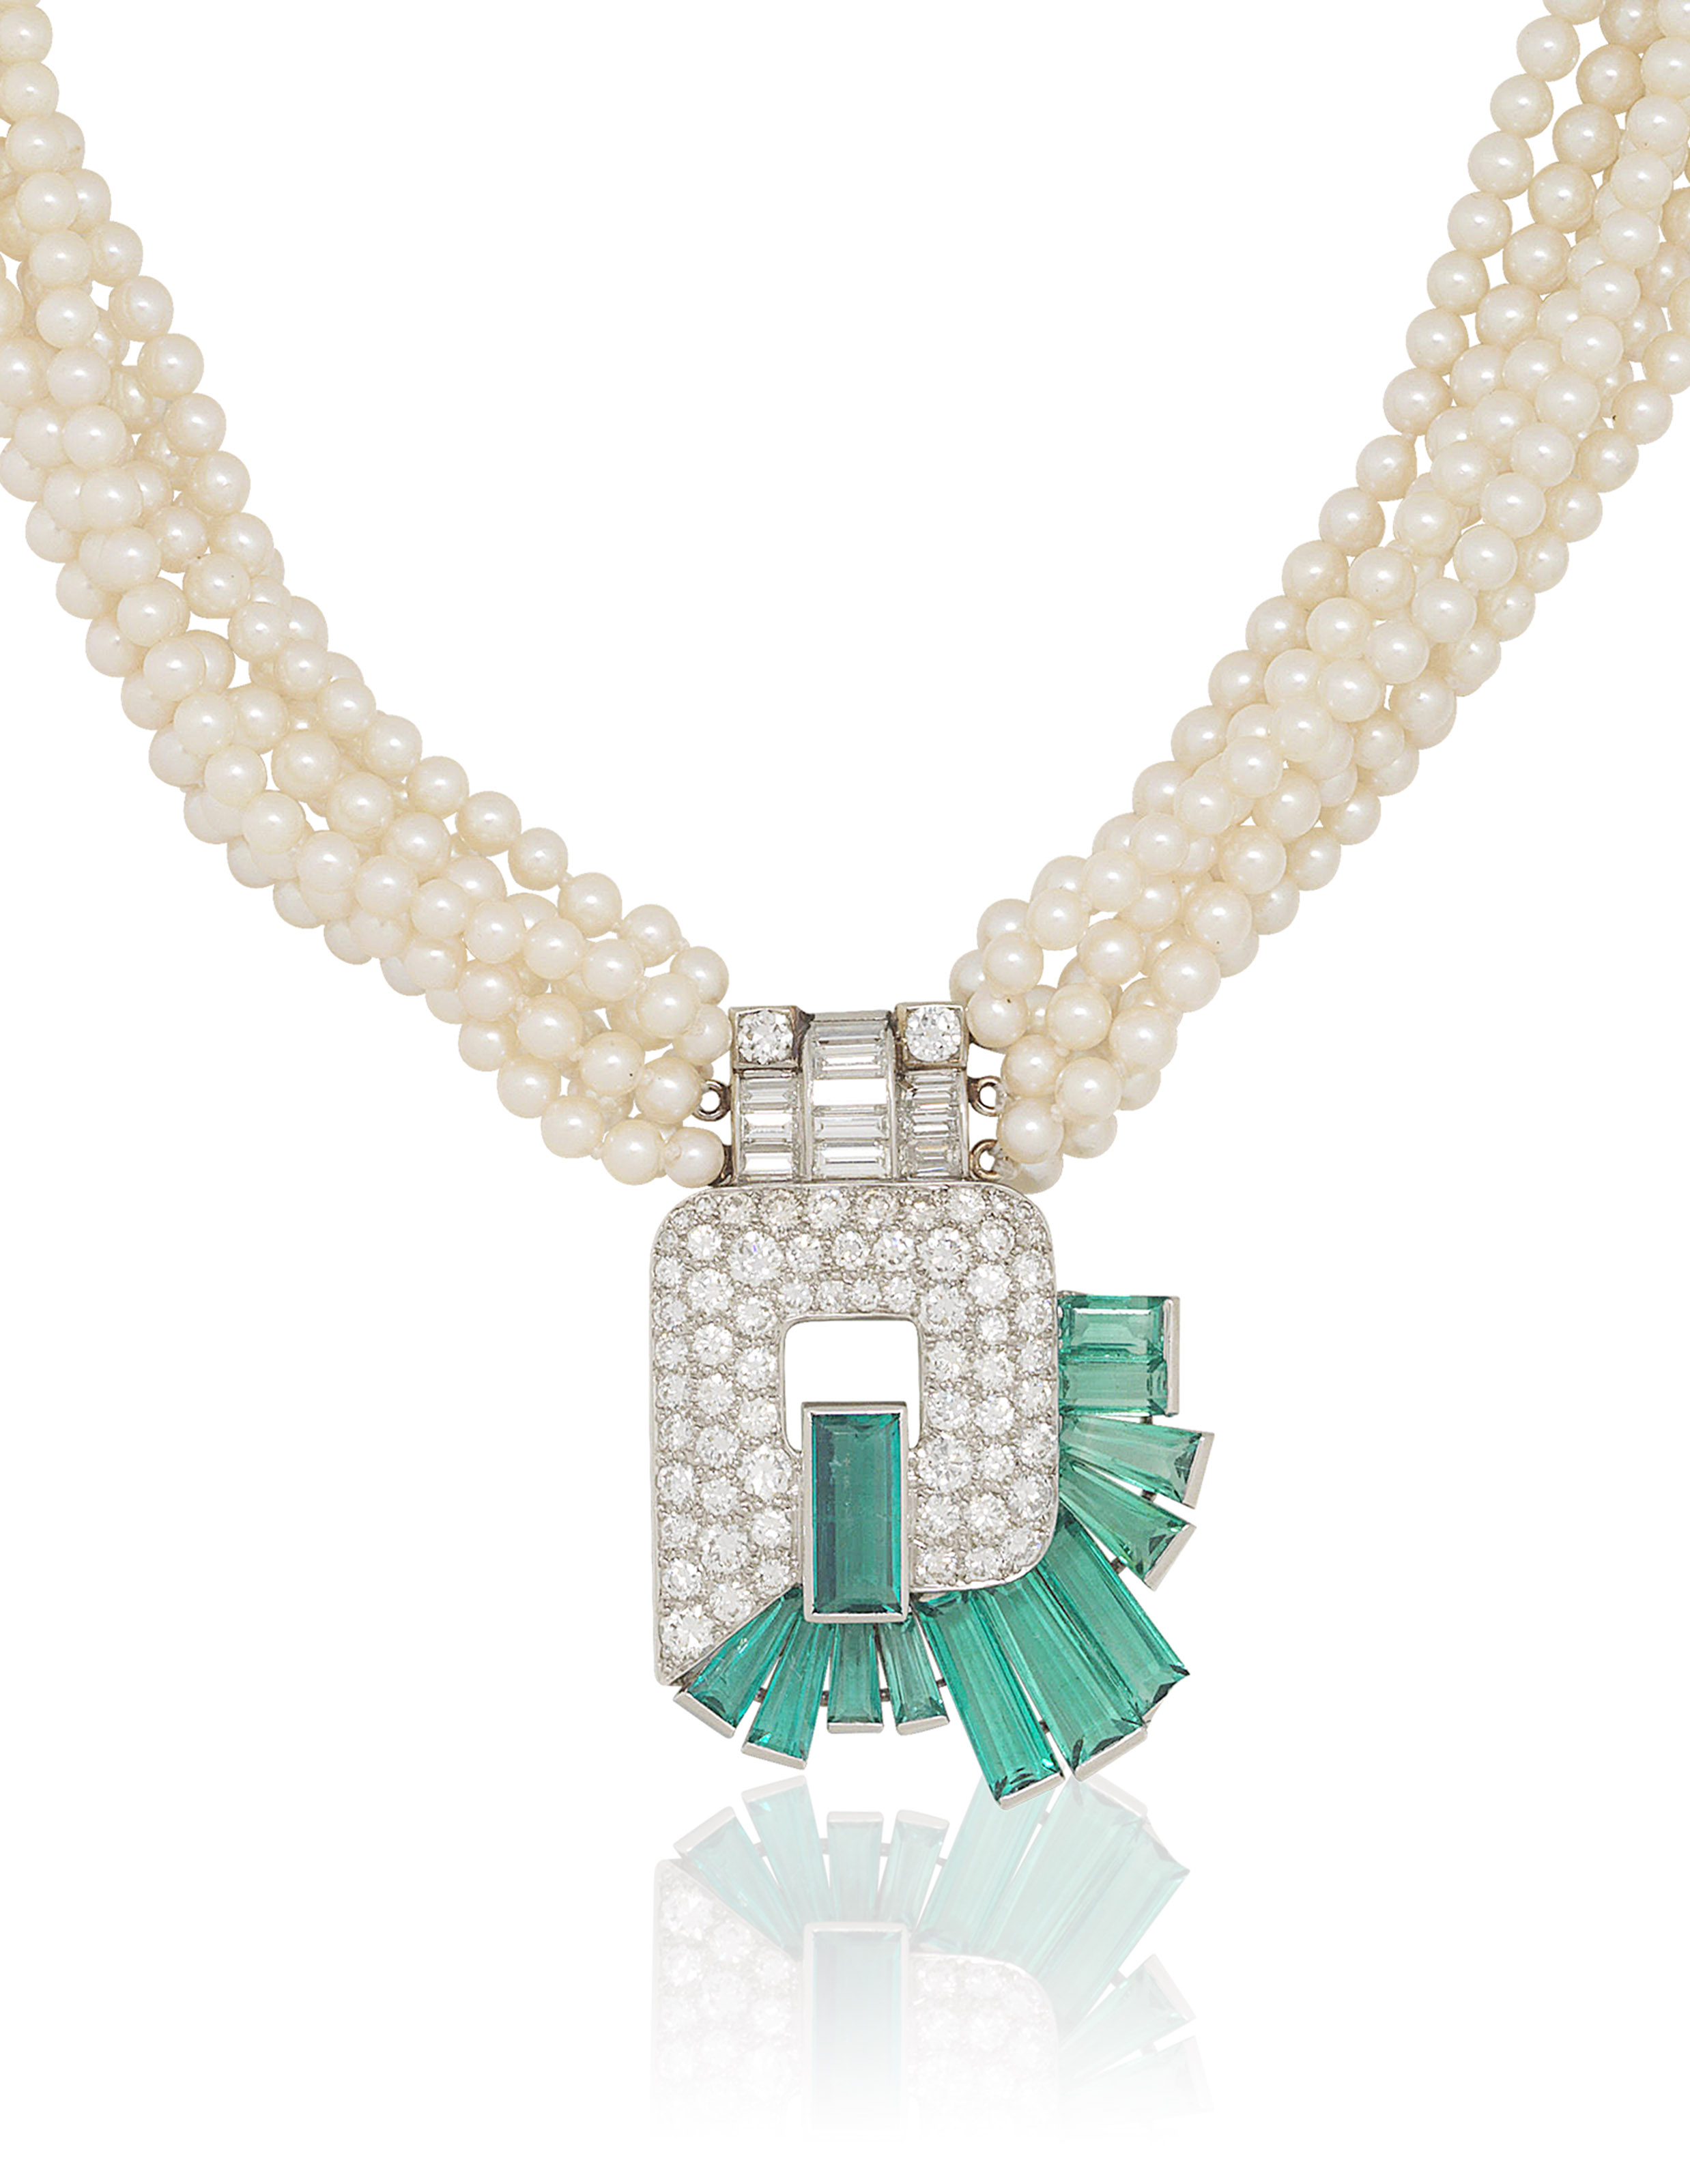 mikimoto stores inches akoya fortunoff necklace gold estate pearl cultured pendant island yellow long jewelry